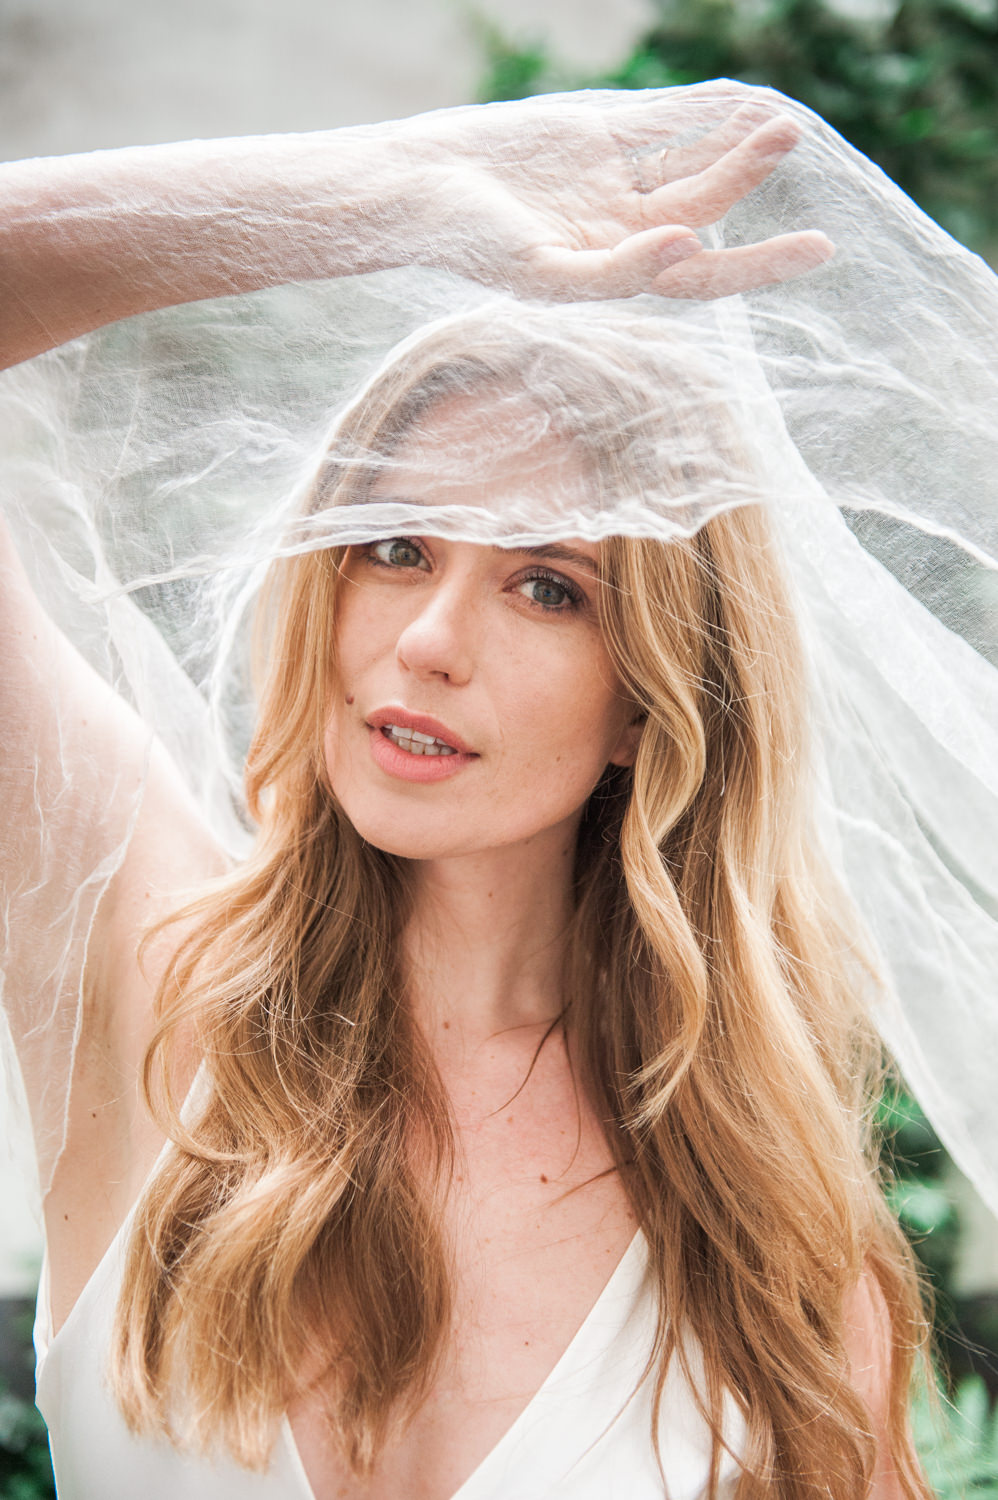 A model posing as a bride while holding up a veil